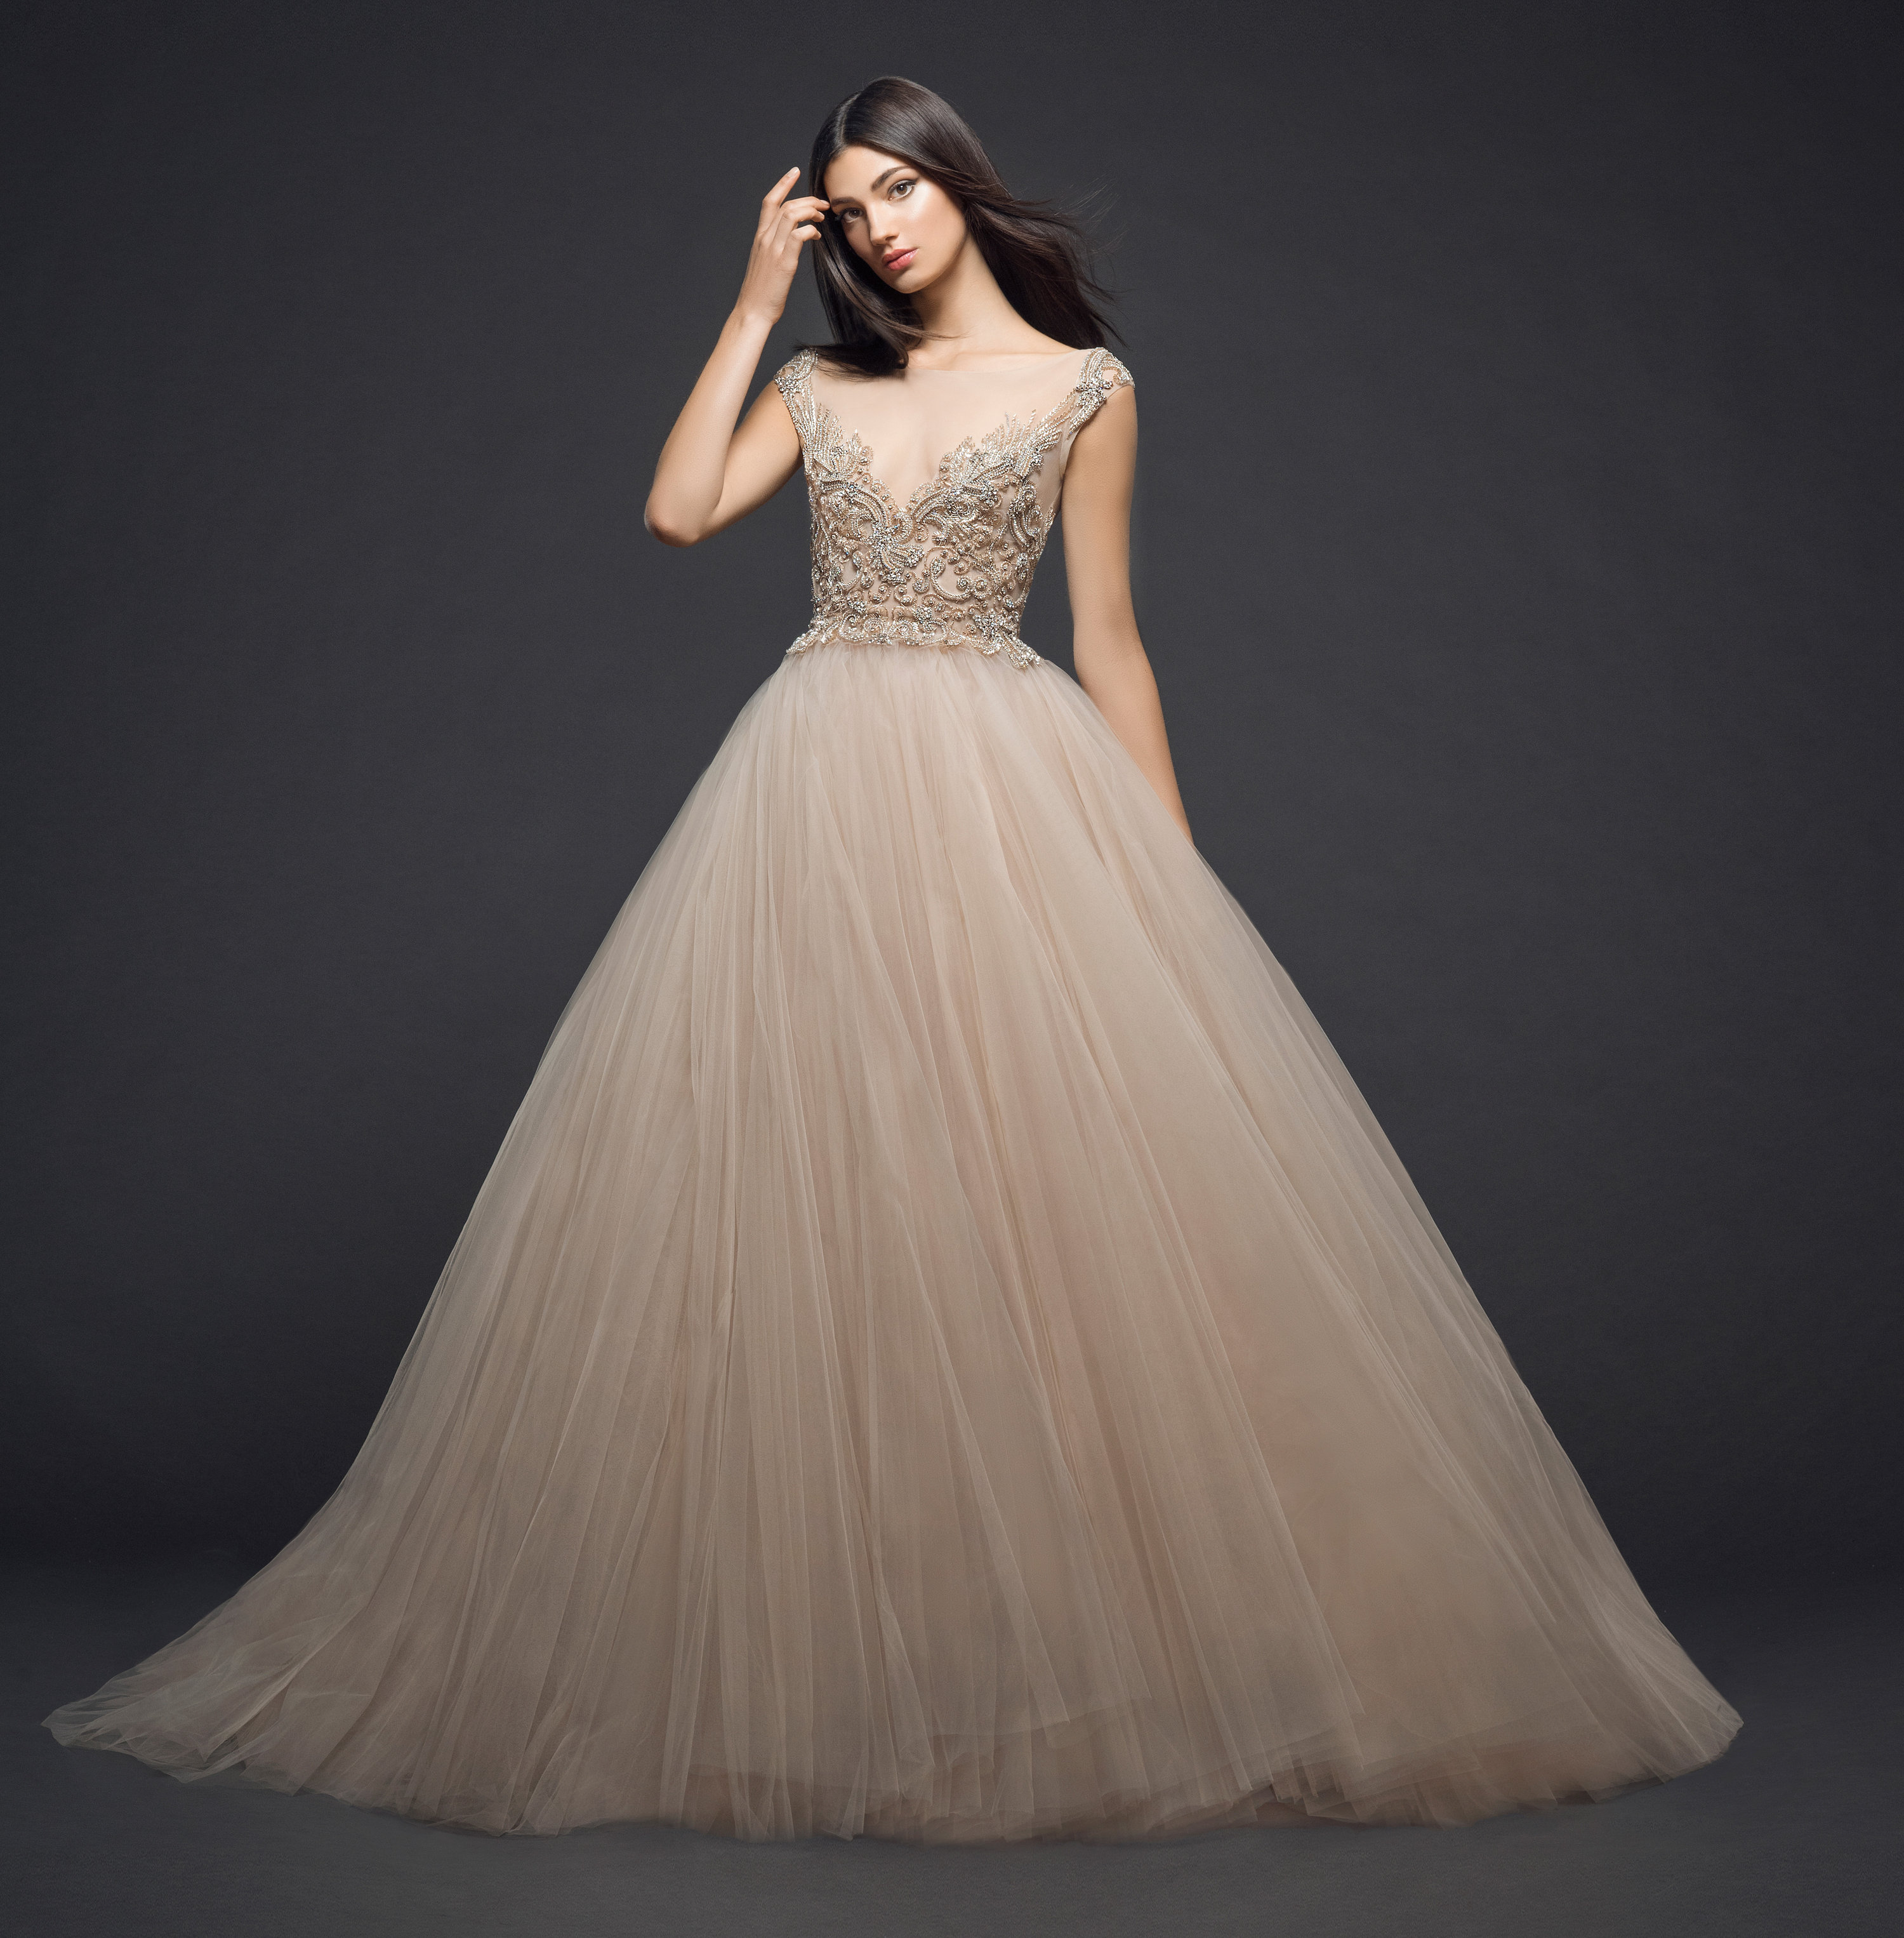 Illusion Beaded Bodice Tulle Skirt Ball Gown Wedding Dress ...